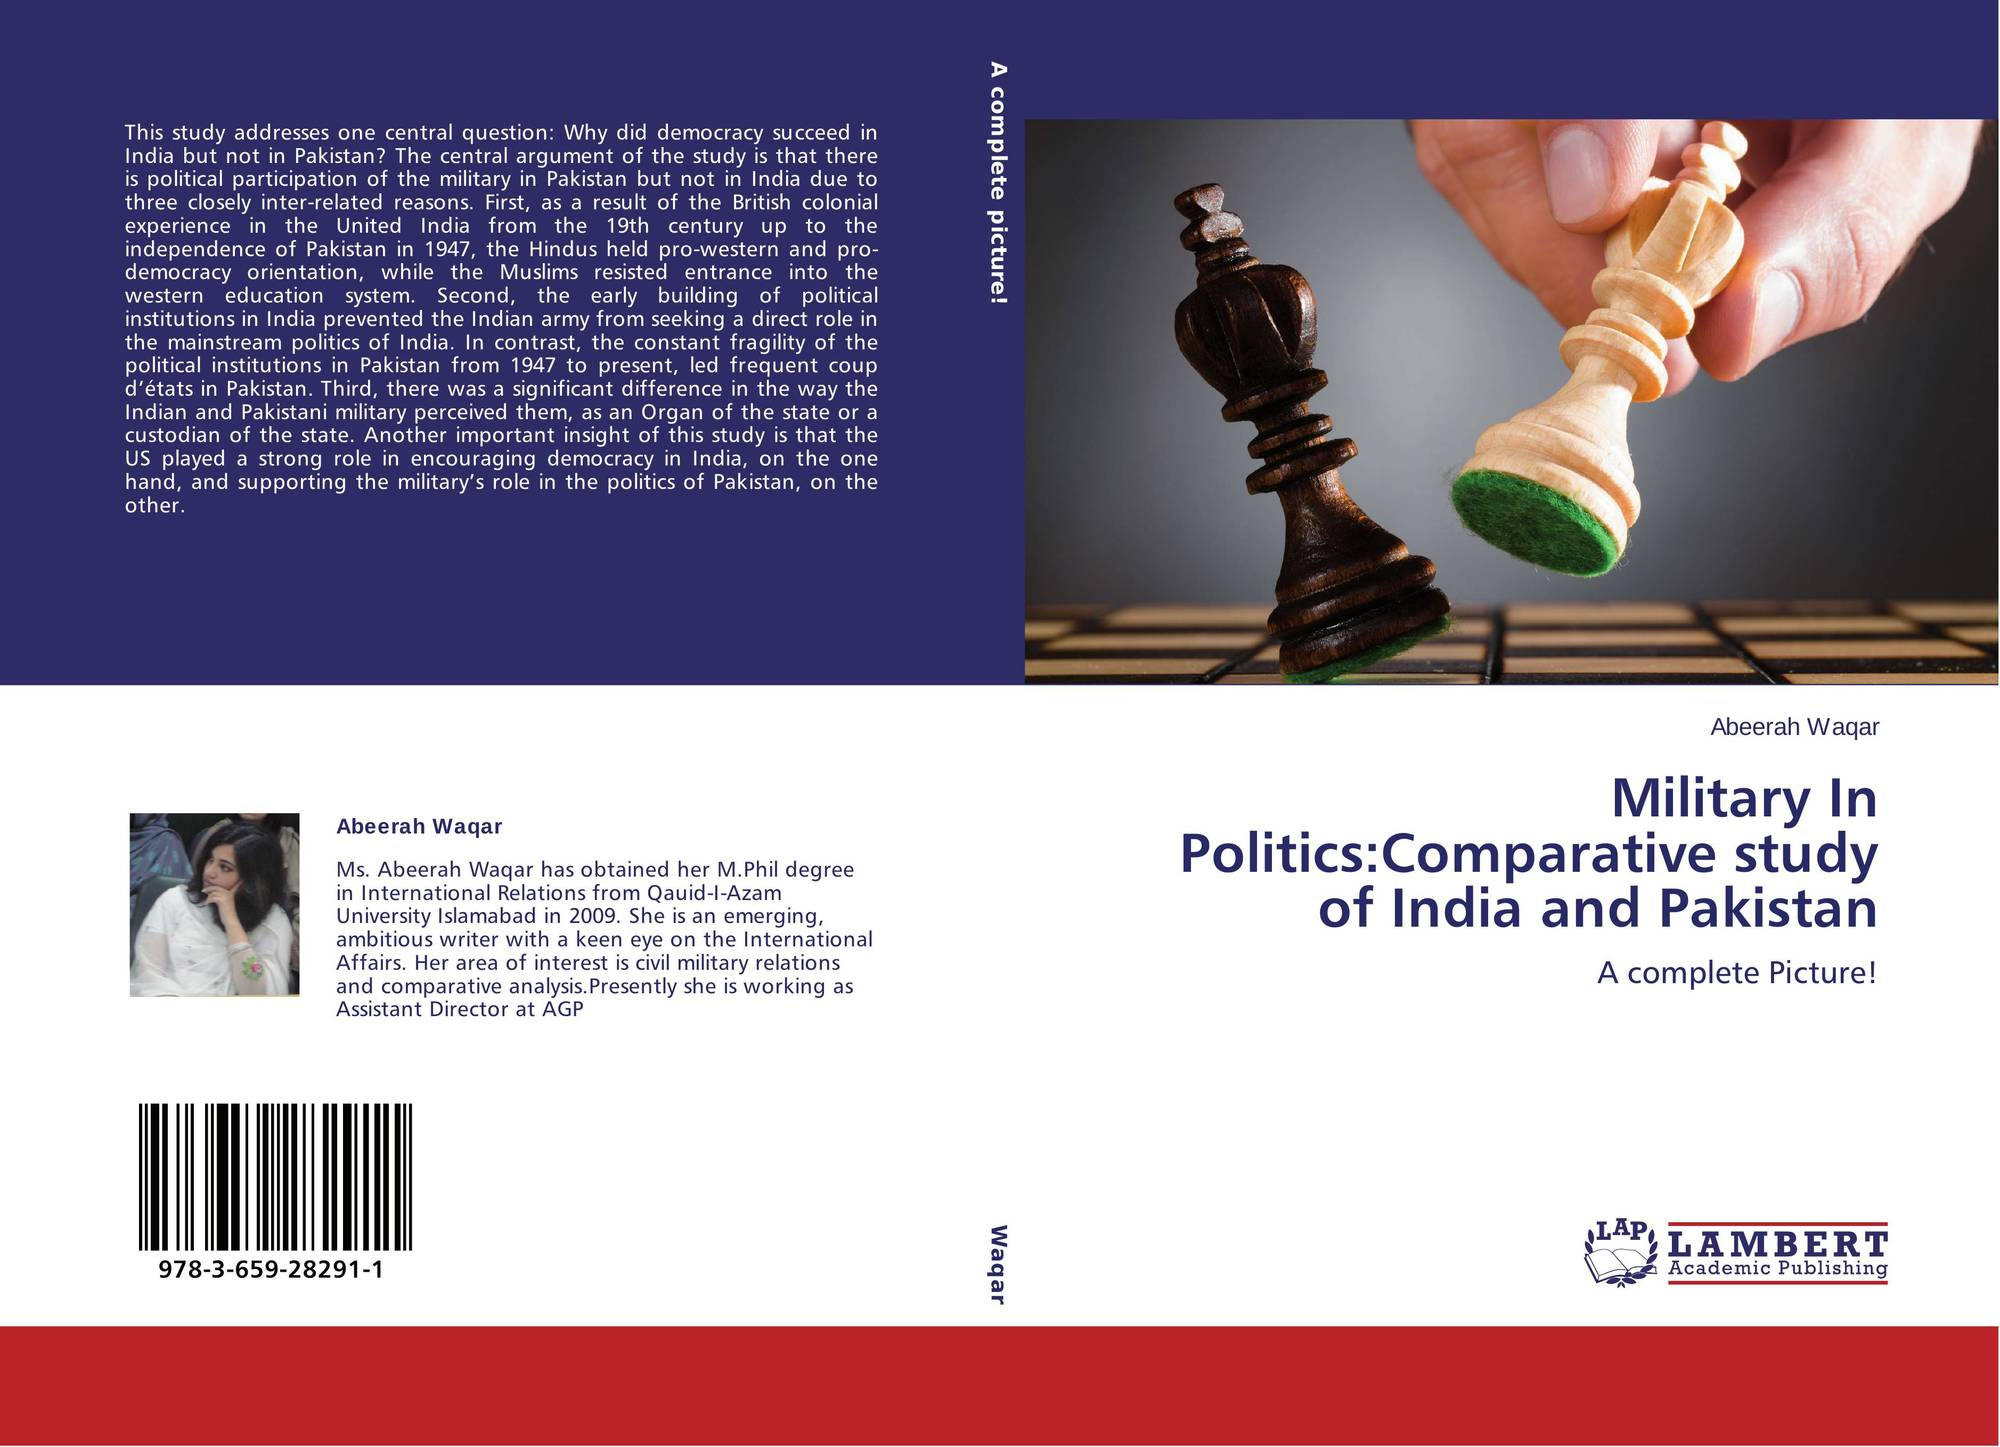 Military In Politics:Comparative study of India and Pakistan, 978-3